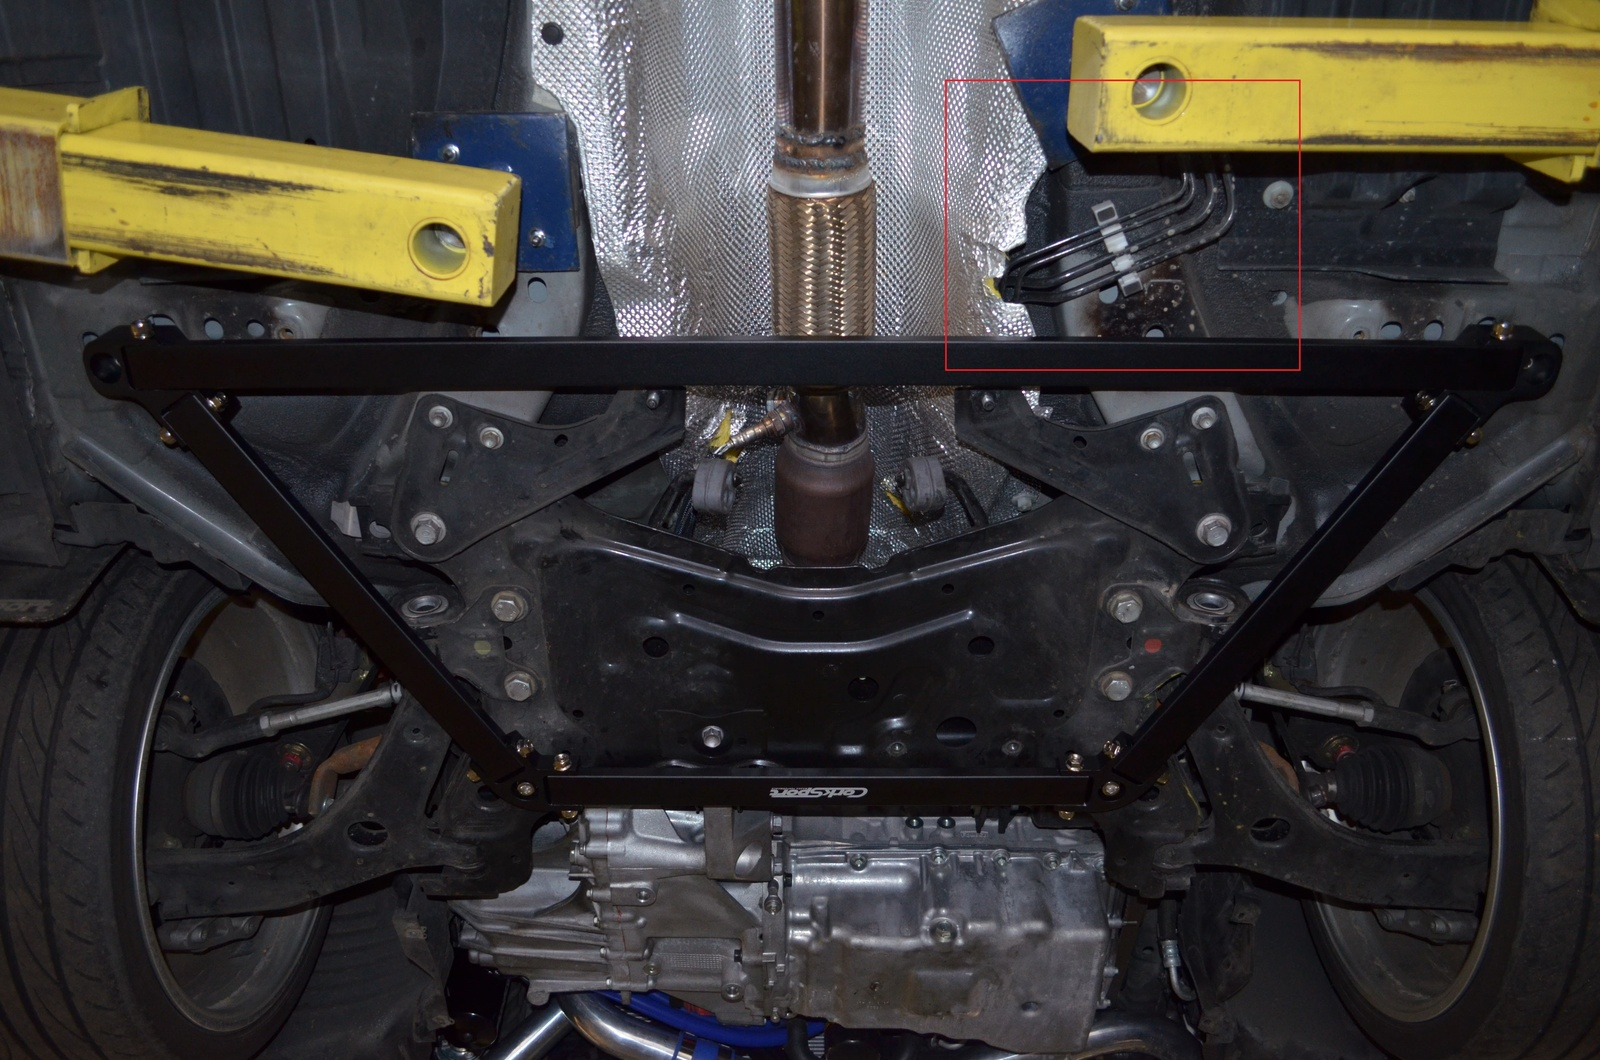 Mazda Mazda3 Questions What Are These Black Tubes For Cargurus 2008 3 Fuel Filter Location 4 Answers